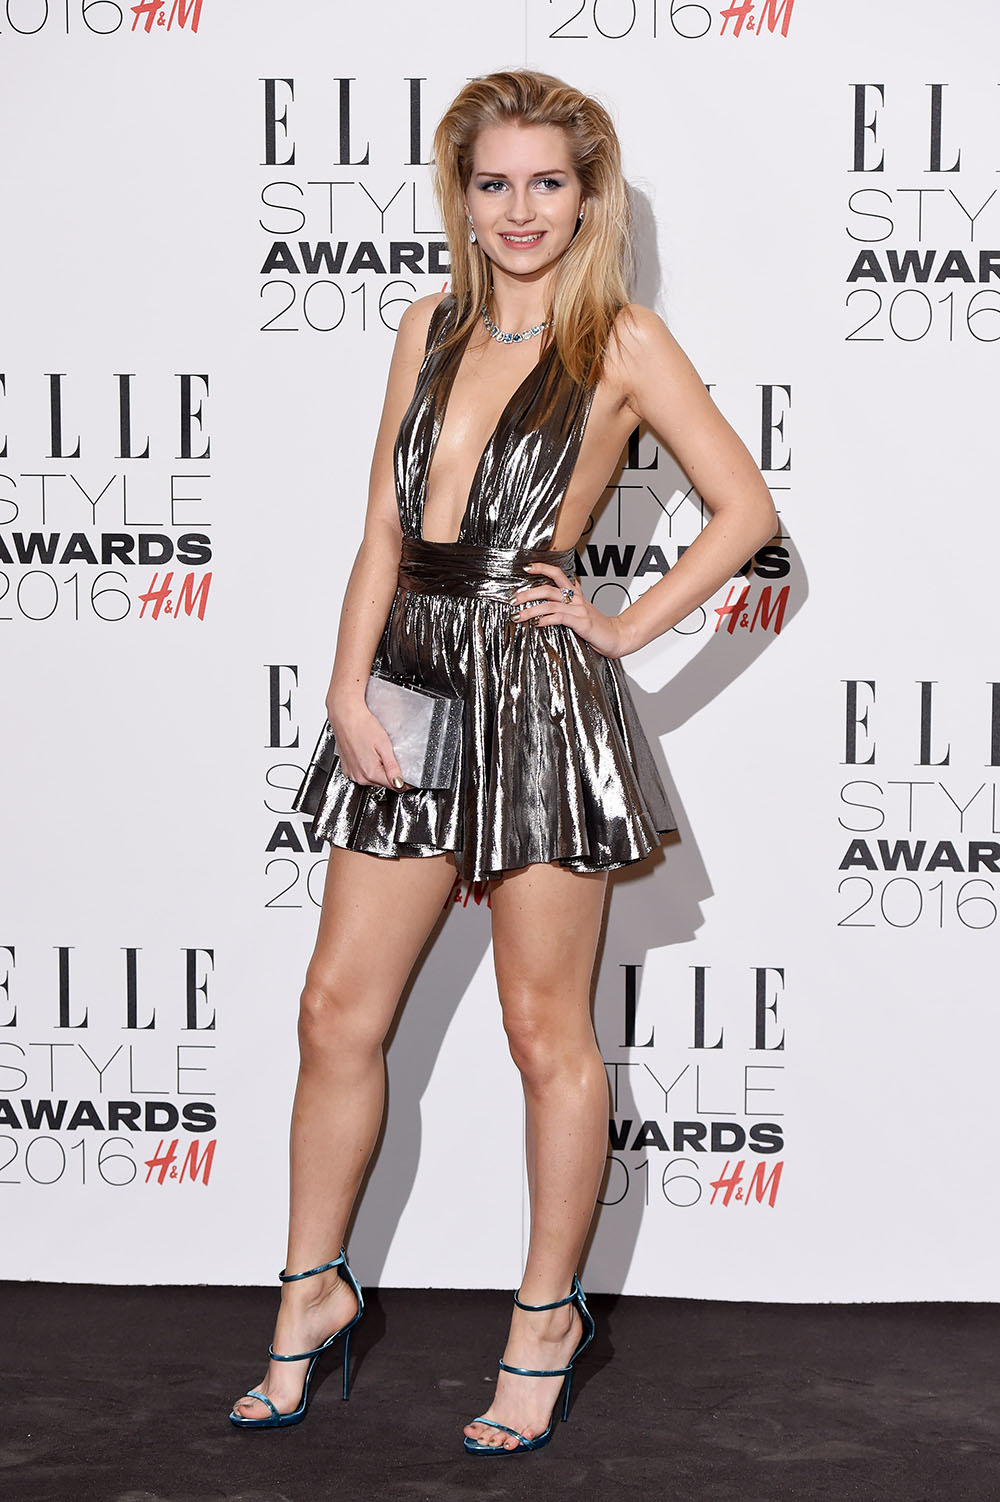 elle style awards 2016 lottie moss